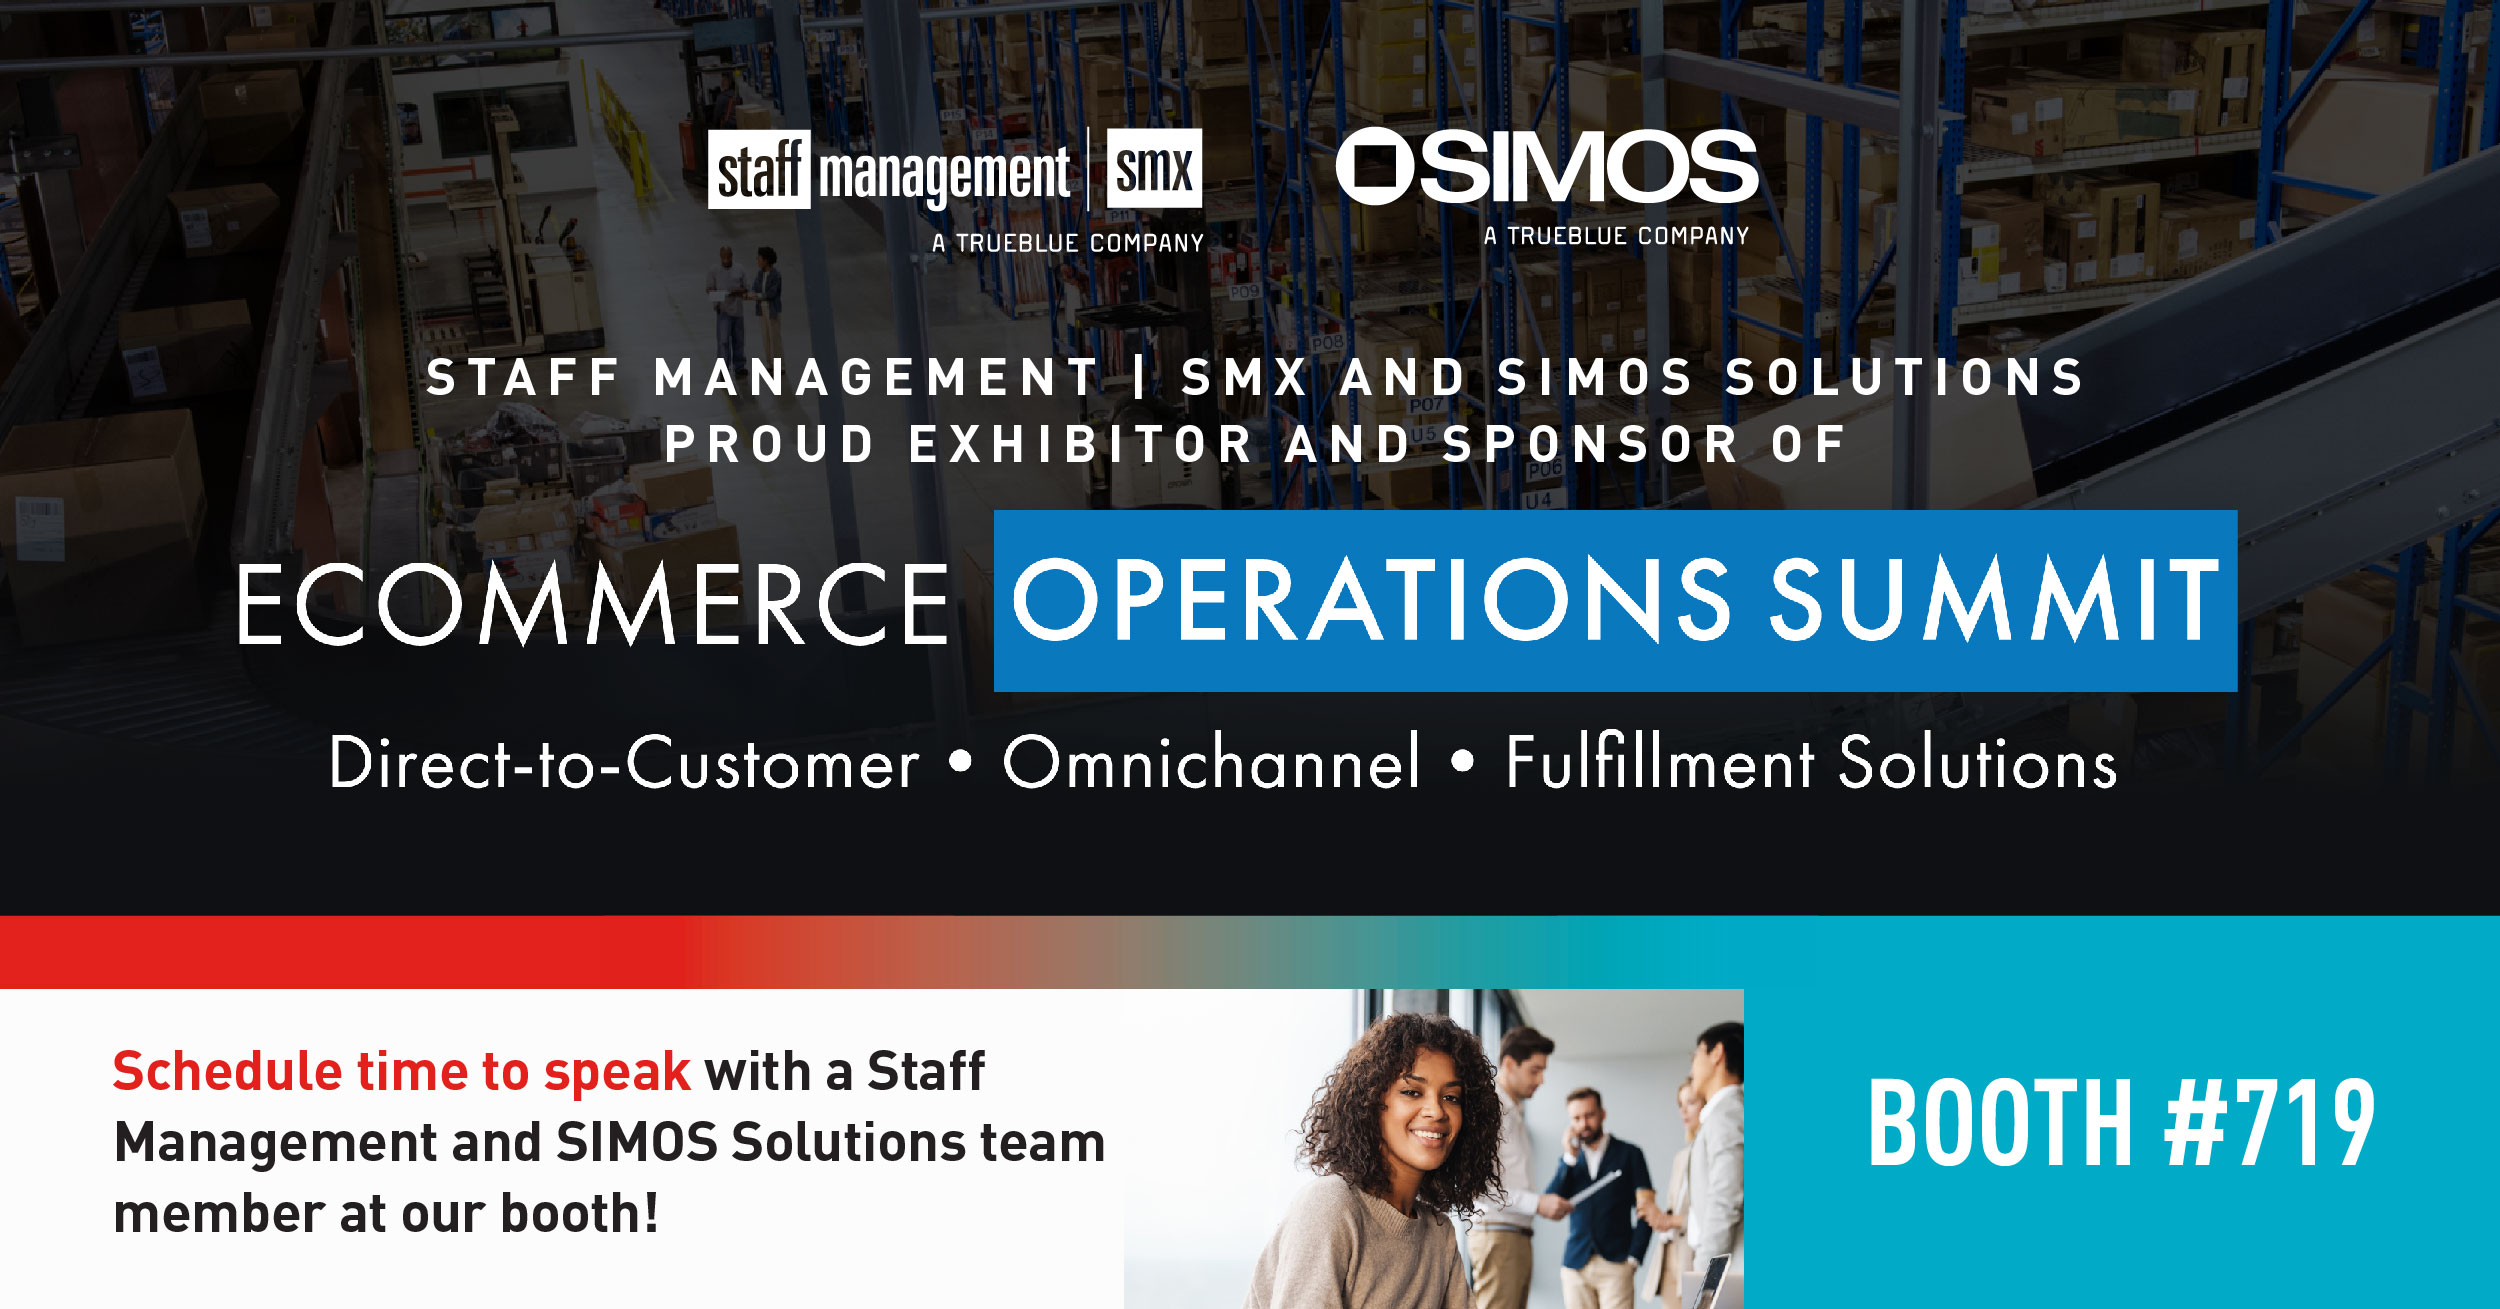 Our SIMOS and Staff Management teams are heading to Nashville, Tennessee for the eCommerce Operations Summit on August 17th and 18th.